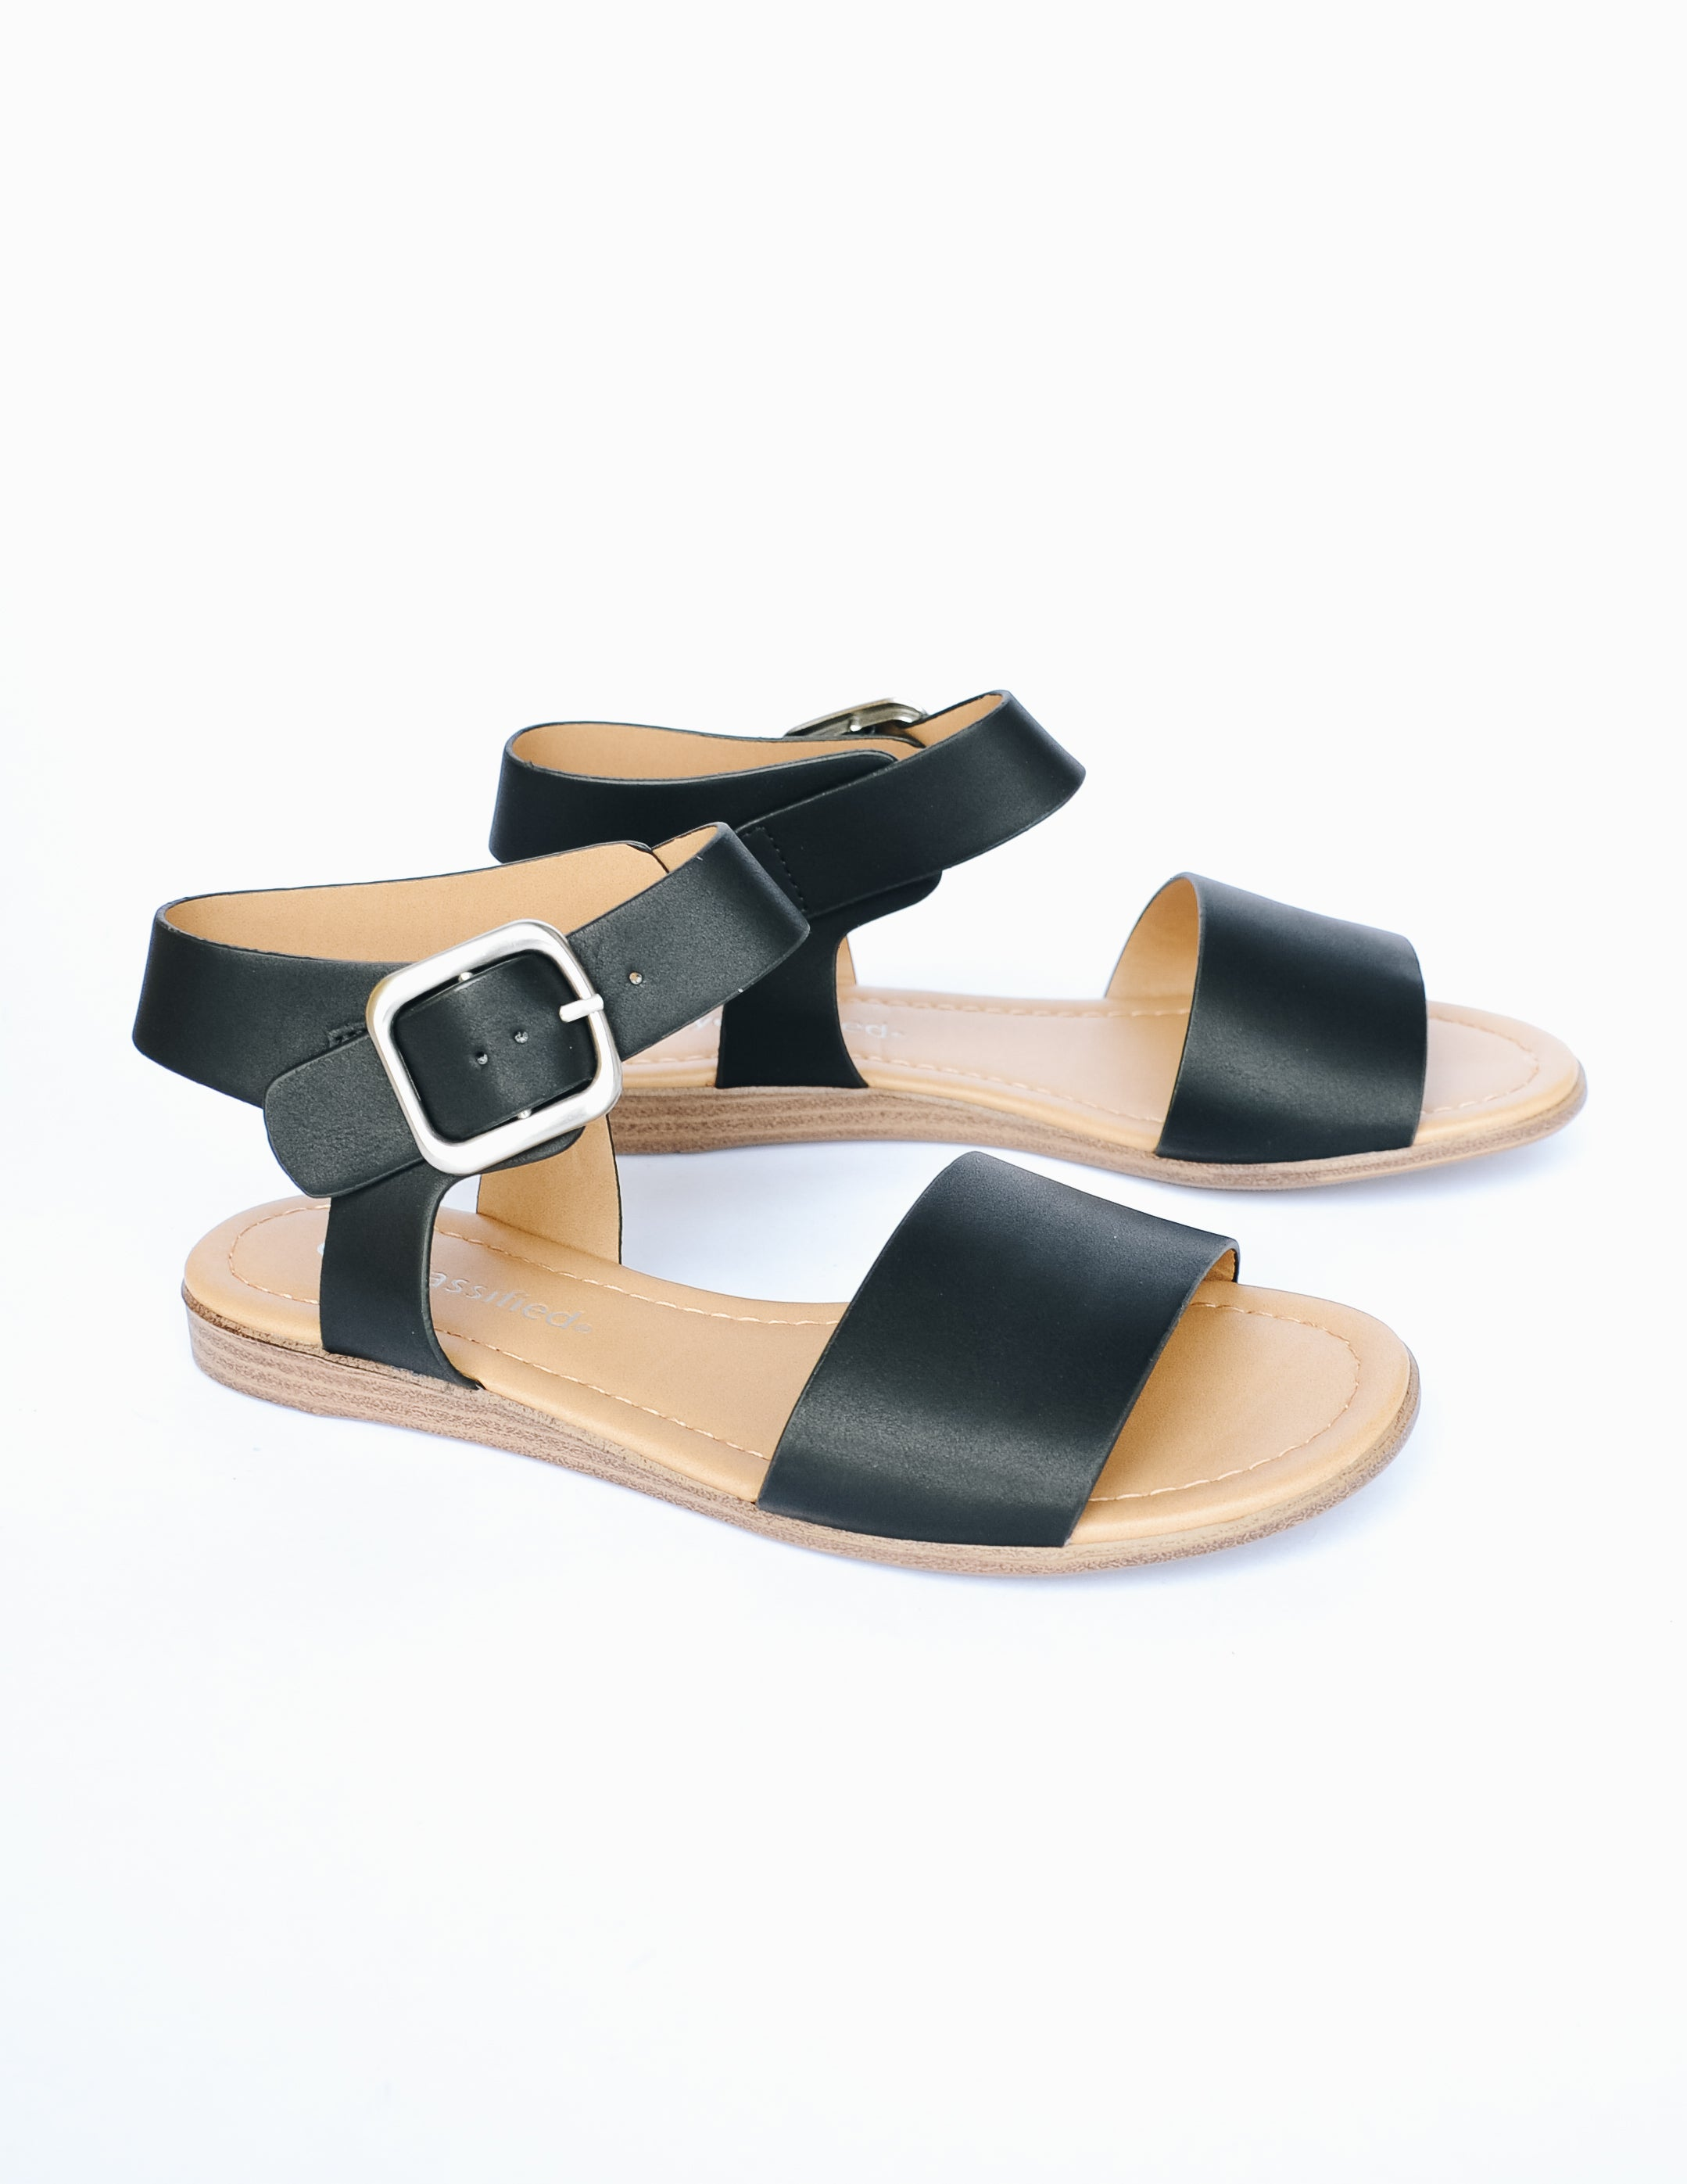 Black sandal with strap over toe and around ankle on faux wood sole